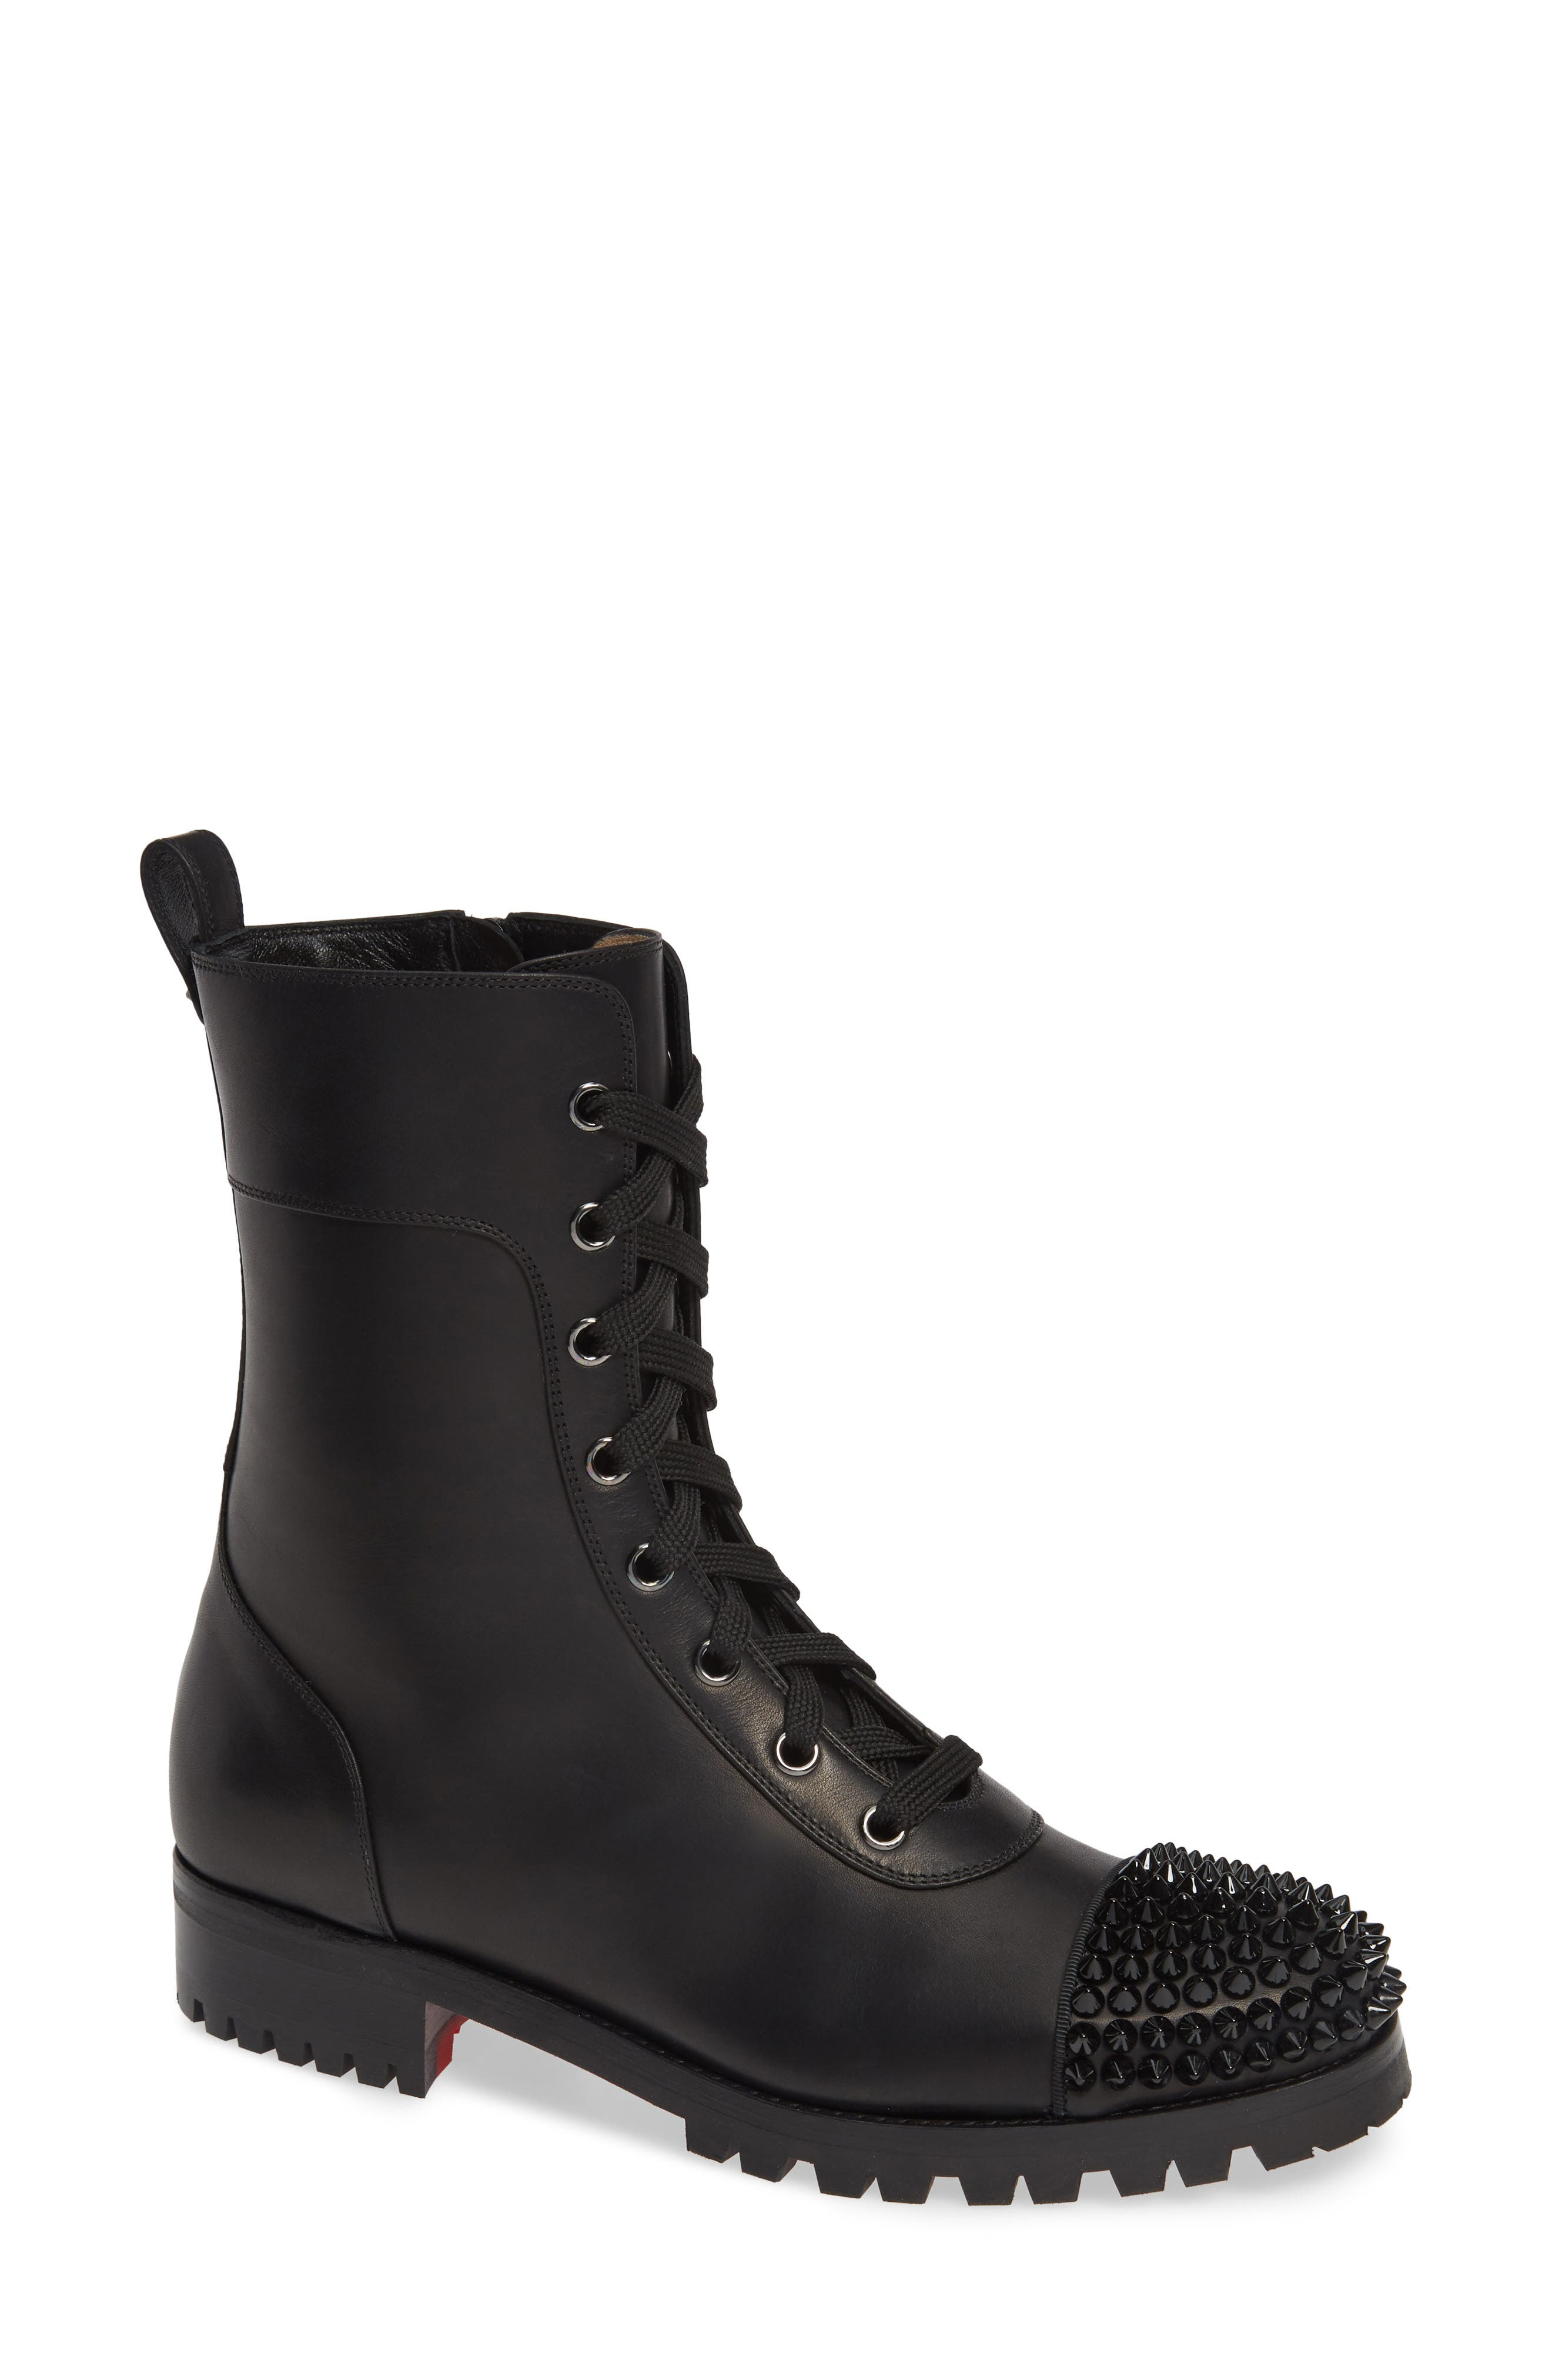 Christian Louboutin Lace-Up Hiker Boot, Black